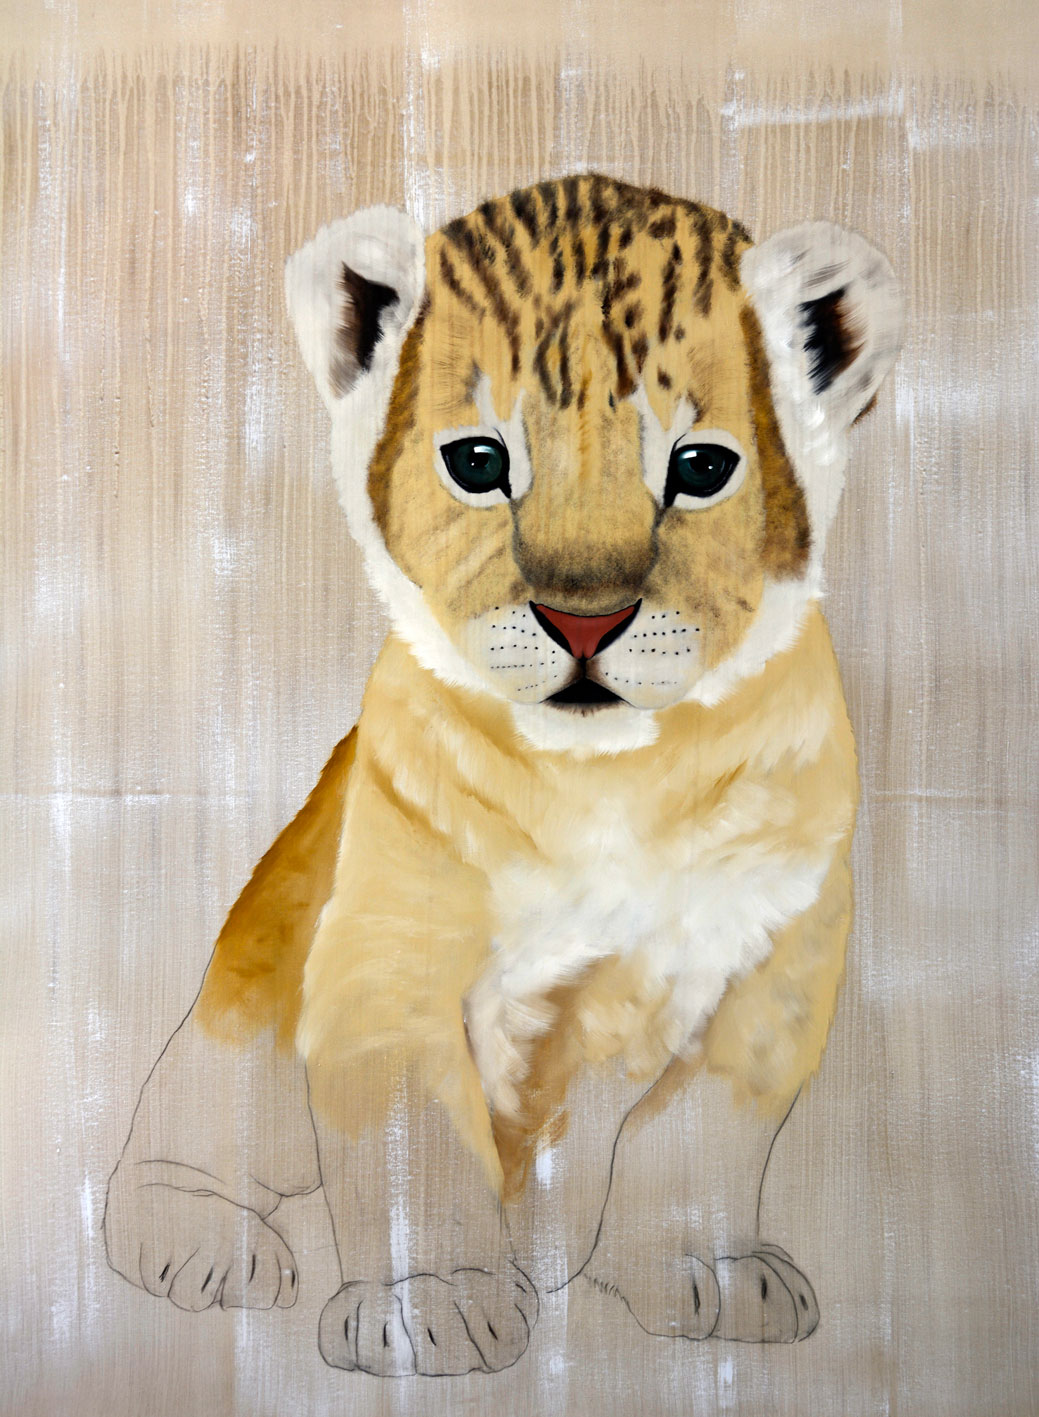 PANTHERA LEO PERSICA panthera%20leo%20lion%20cub%20delete%20threatened%20endangered%20extinction%20 Thierry Bisch painter animals painting art decoration hotel design interior luxury nature biodiversity conservation